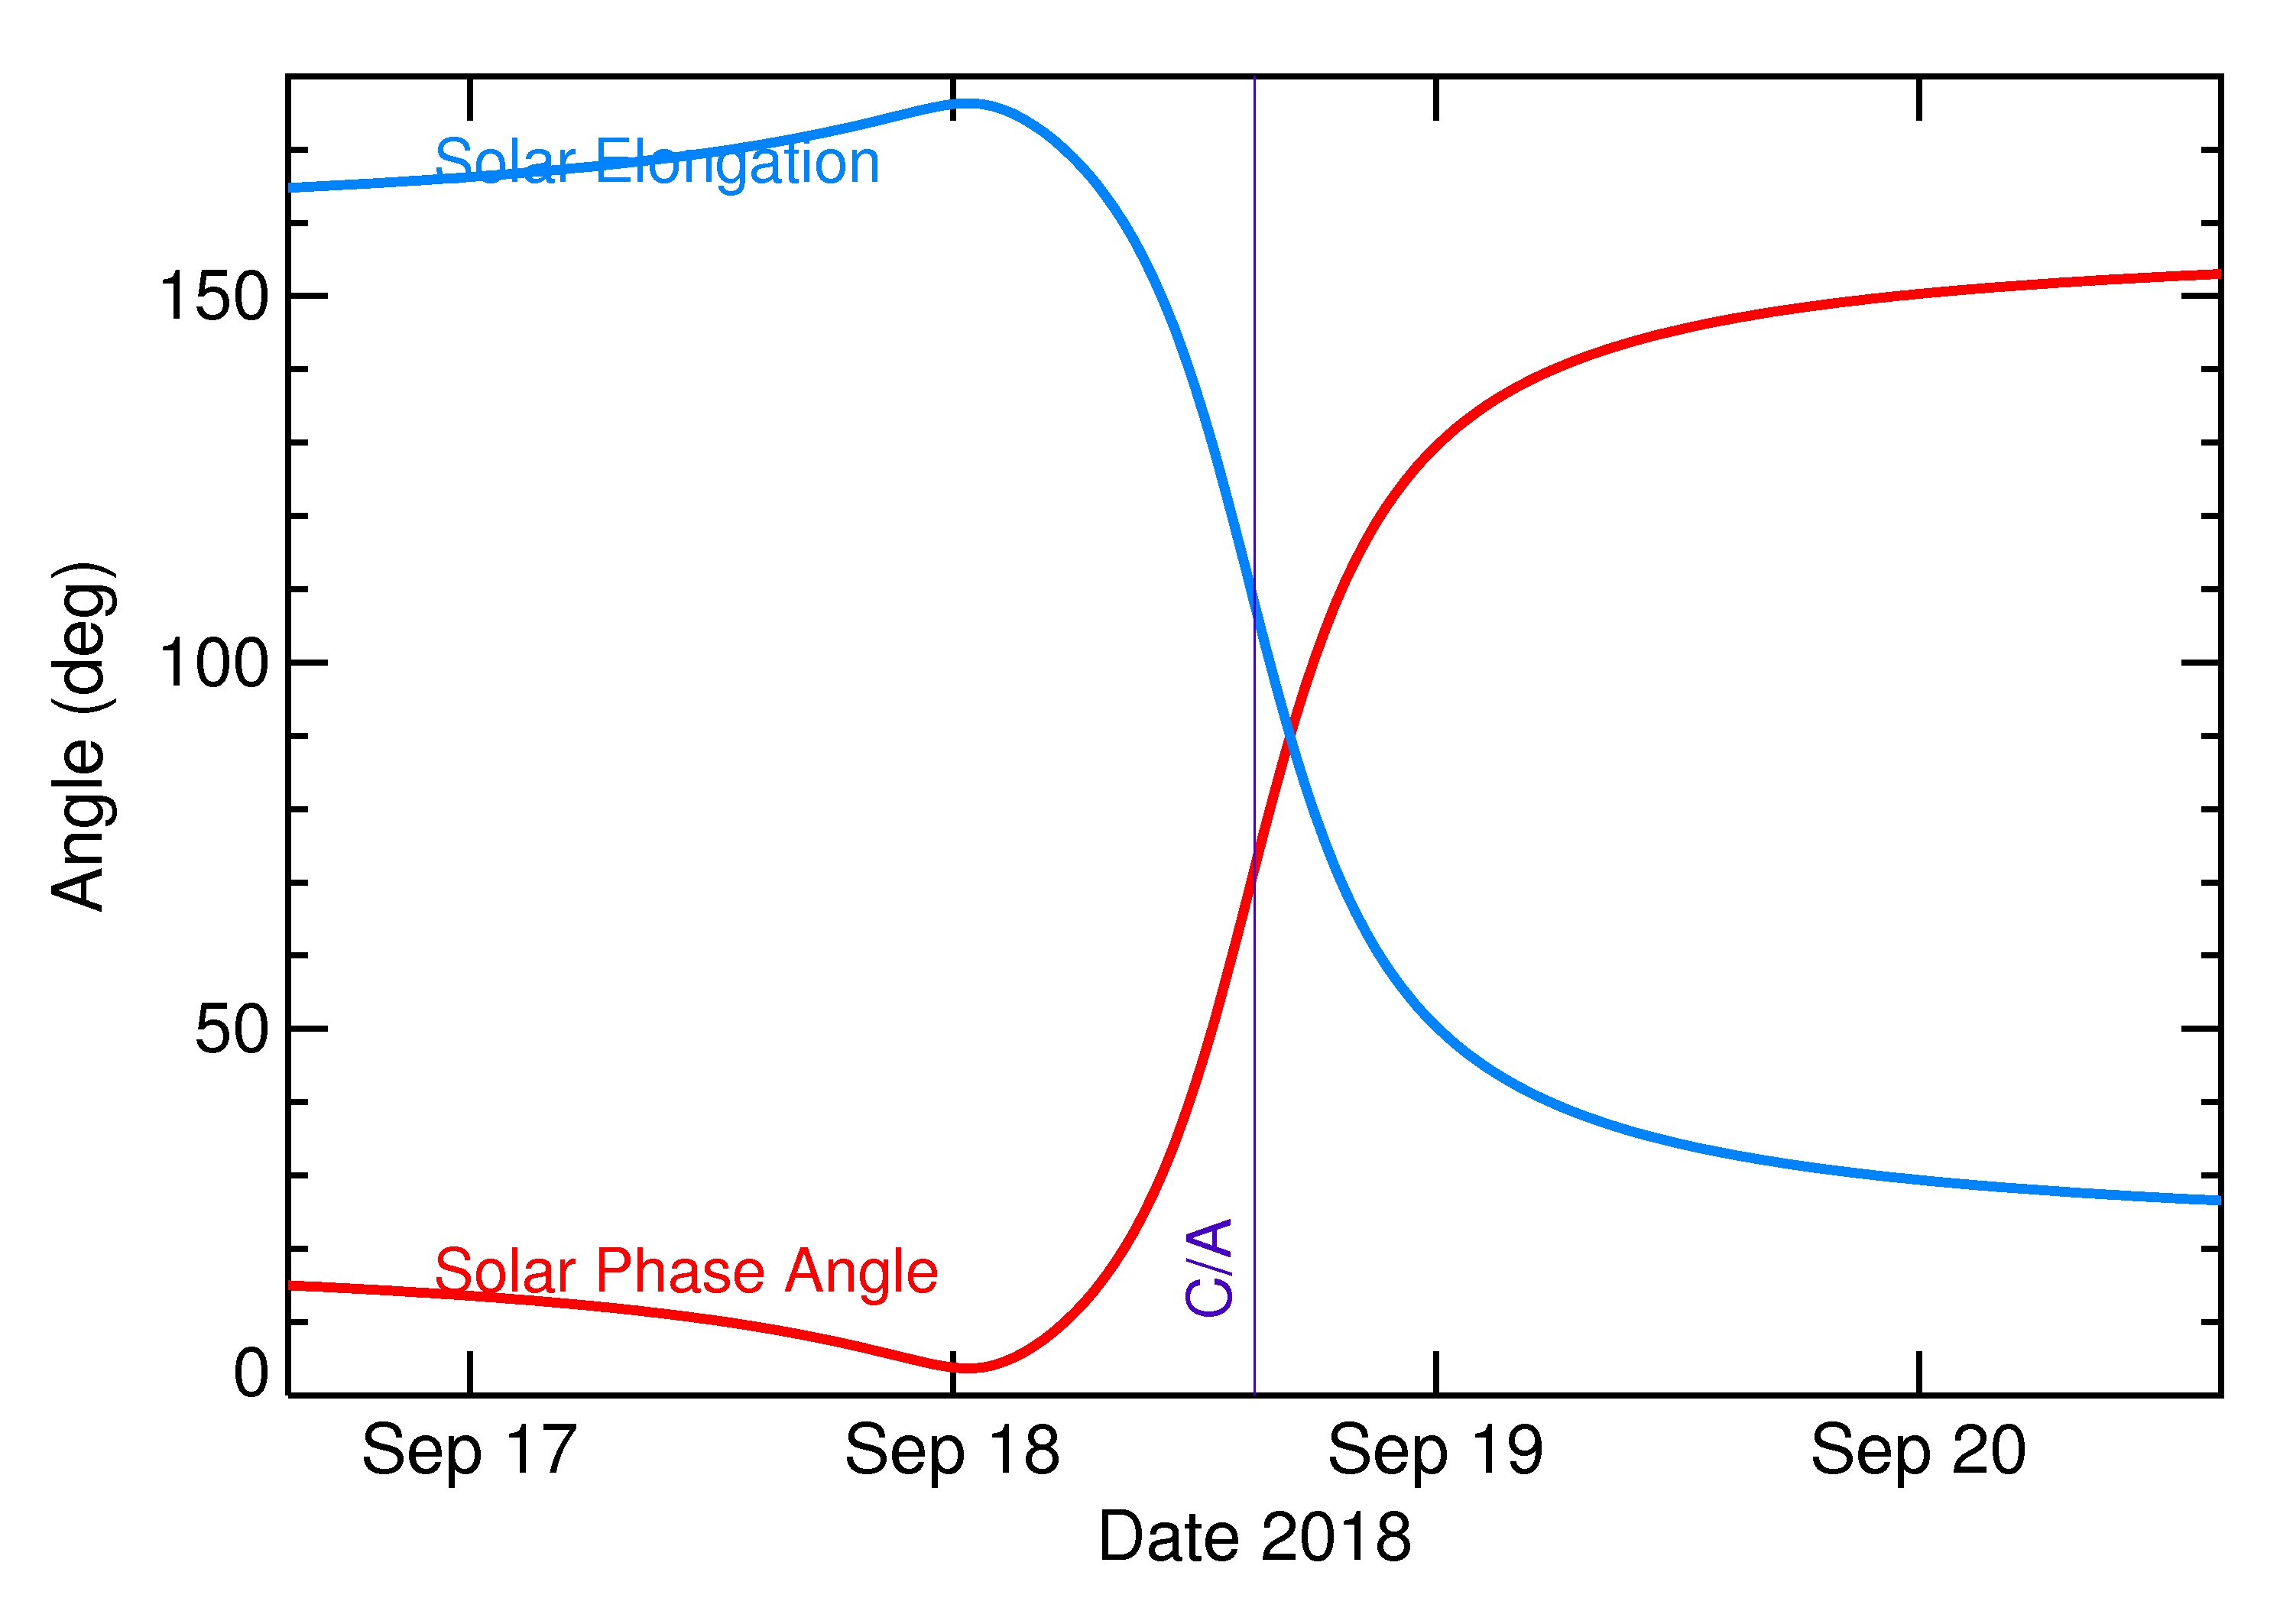 Solar Elongation and Solar Phase Angle of 2018 SC in the days around closest approach